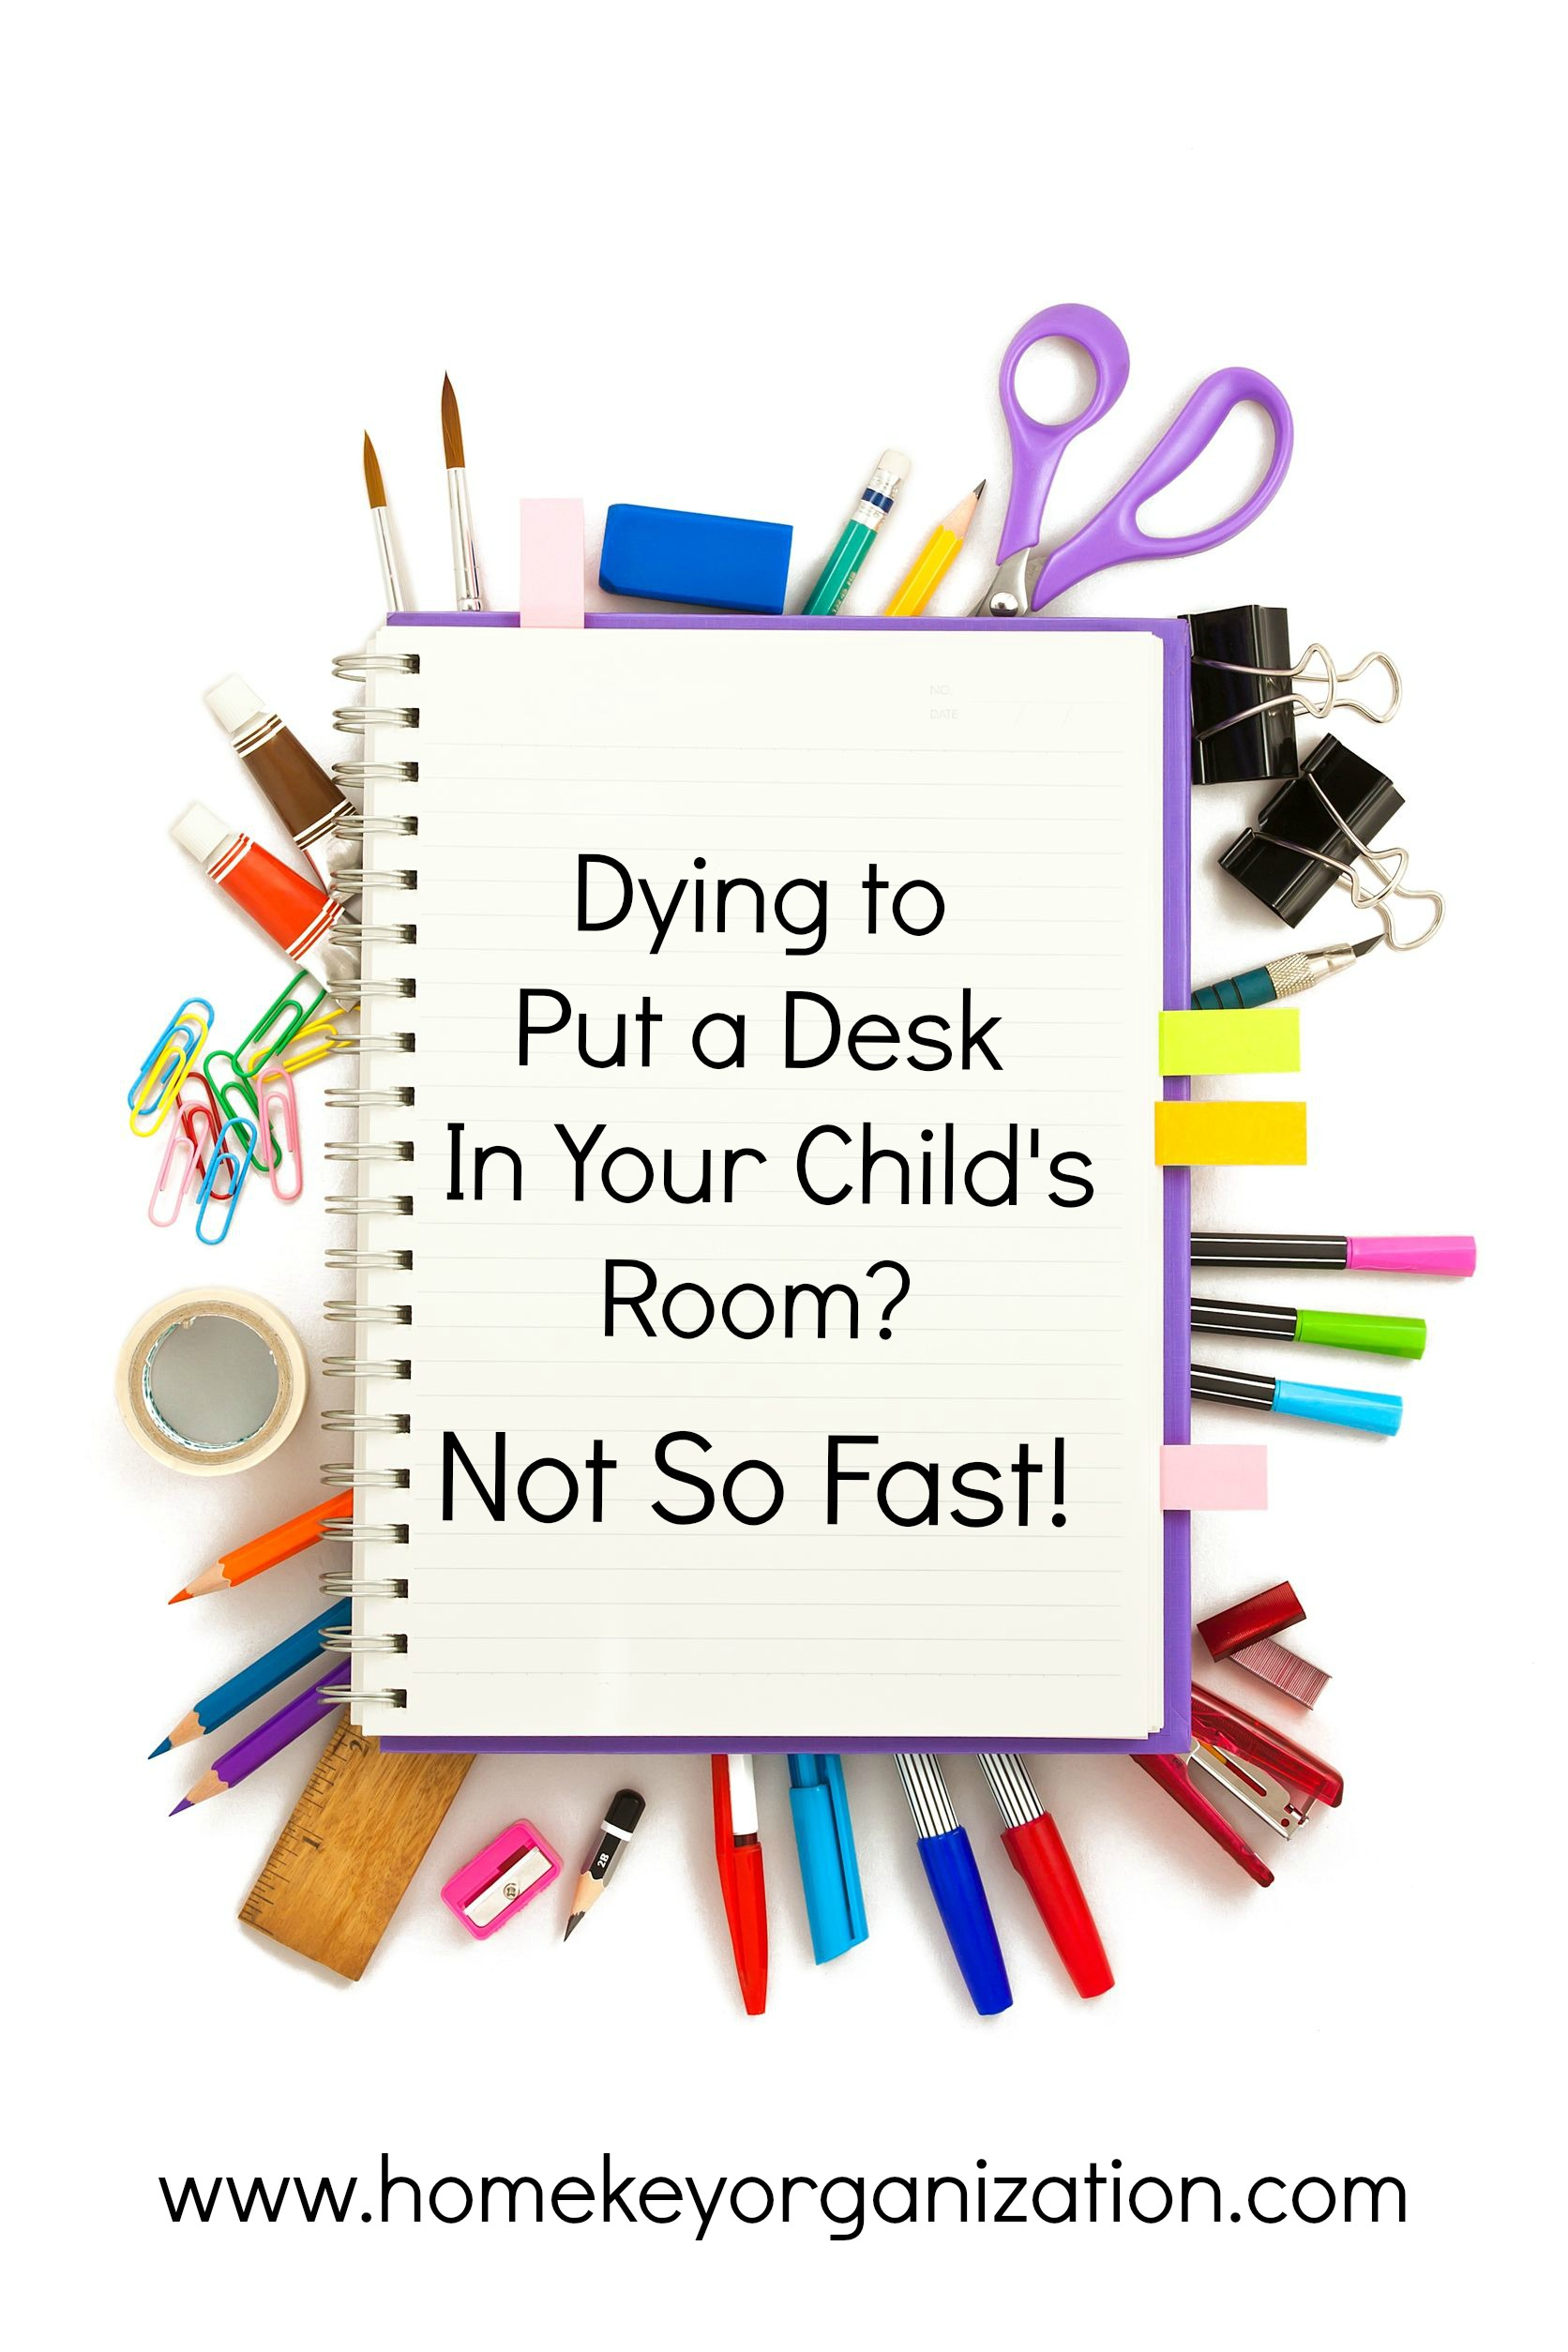 Dying To Put A Desk In Your Child's Room?  Not So Fast!